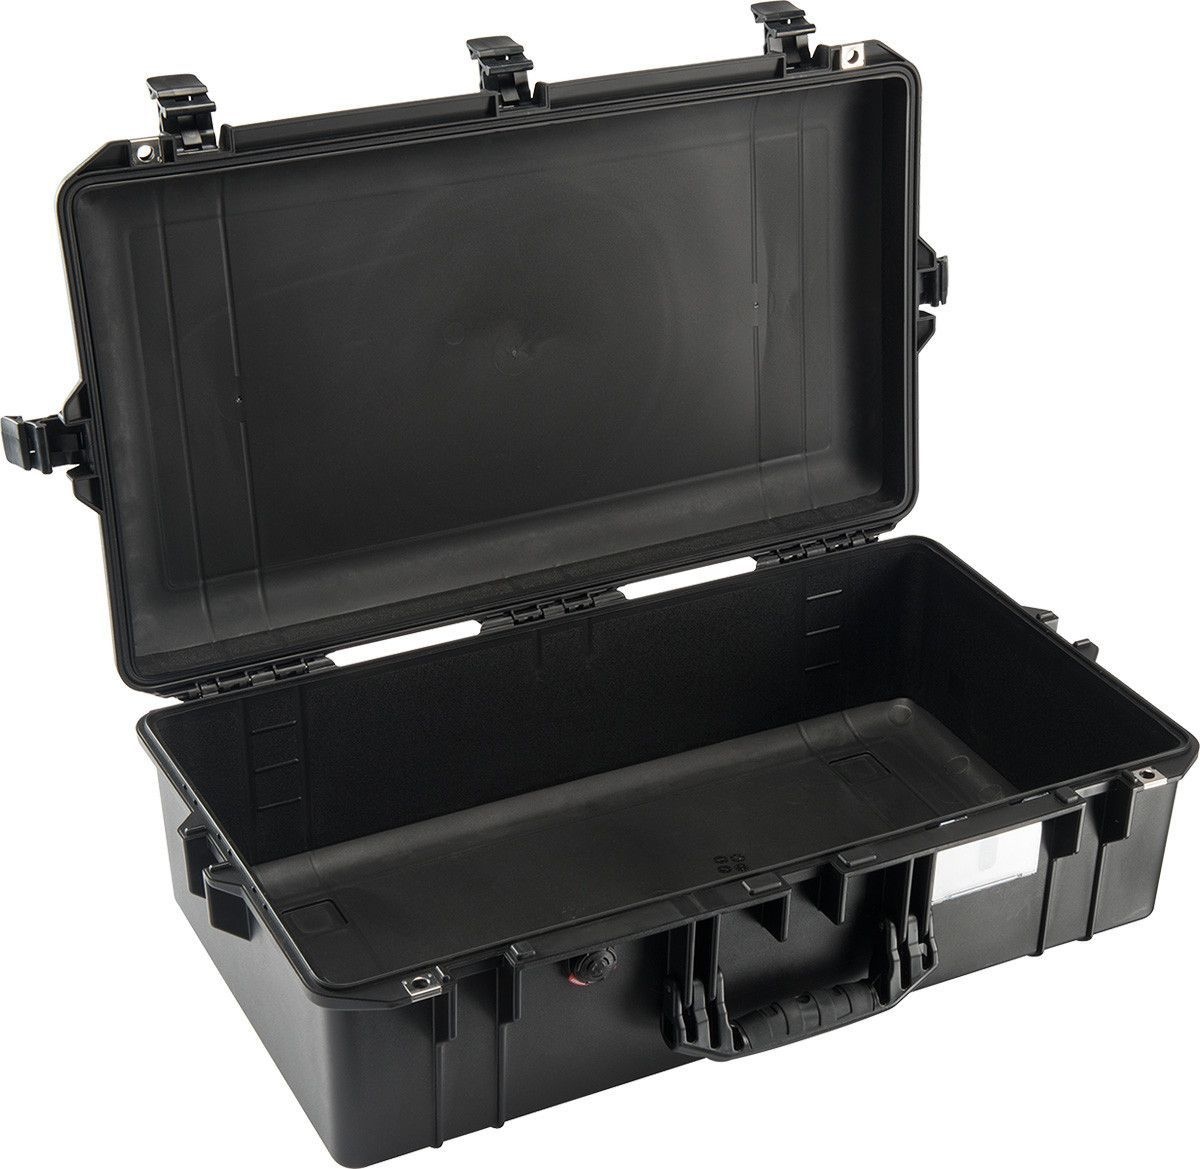 1605 Air Case Pelican case, Protective cases, Suitcase